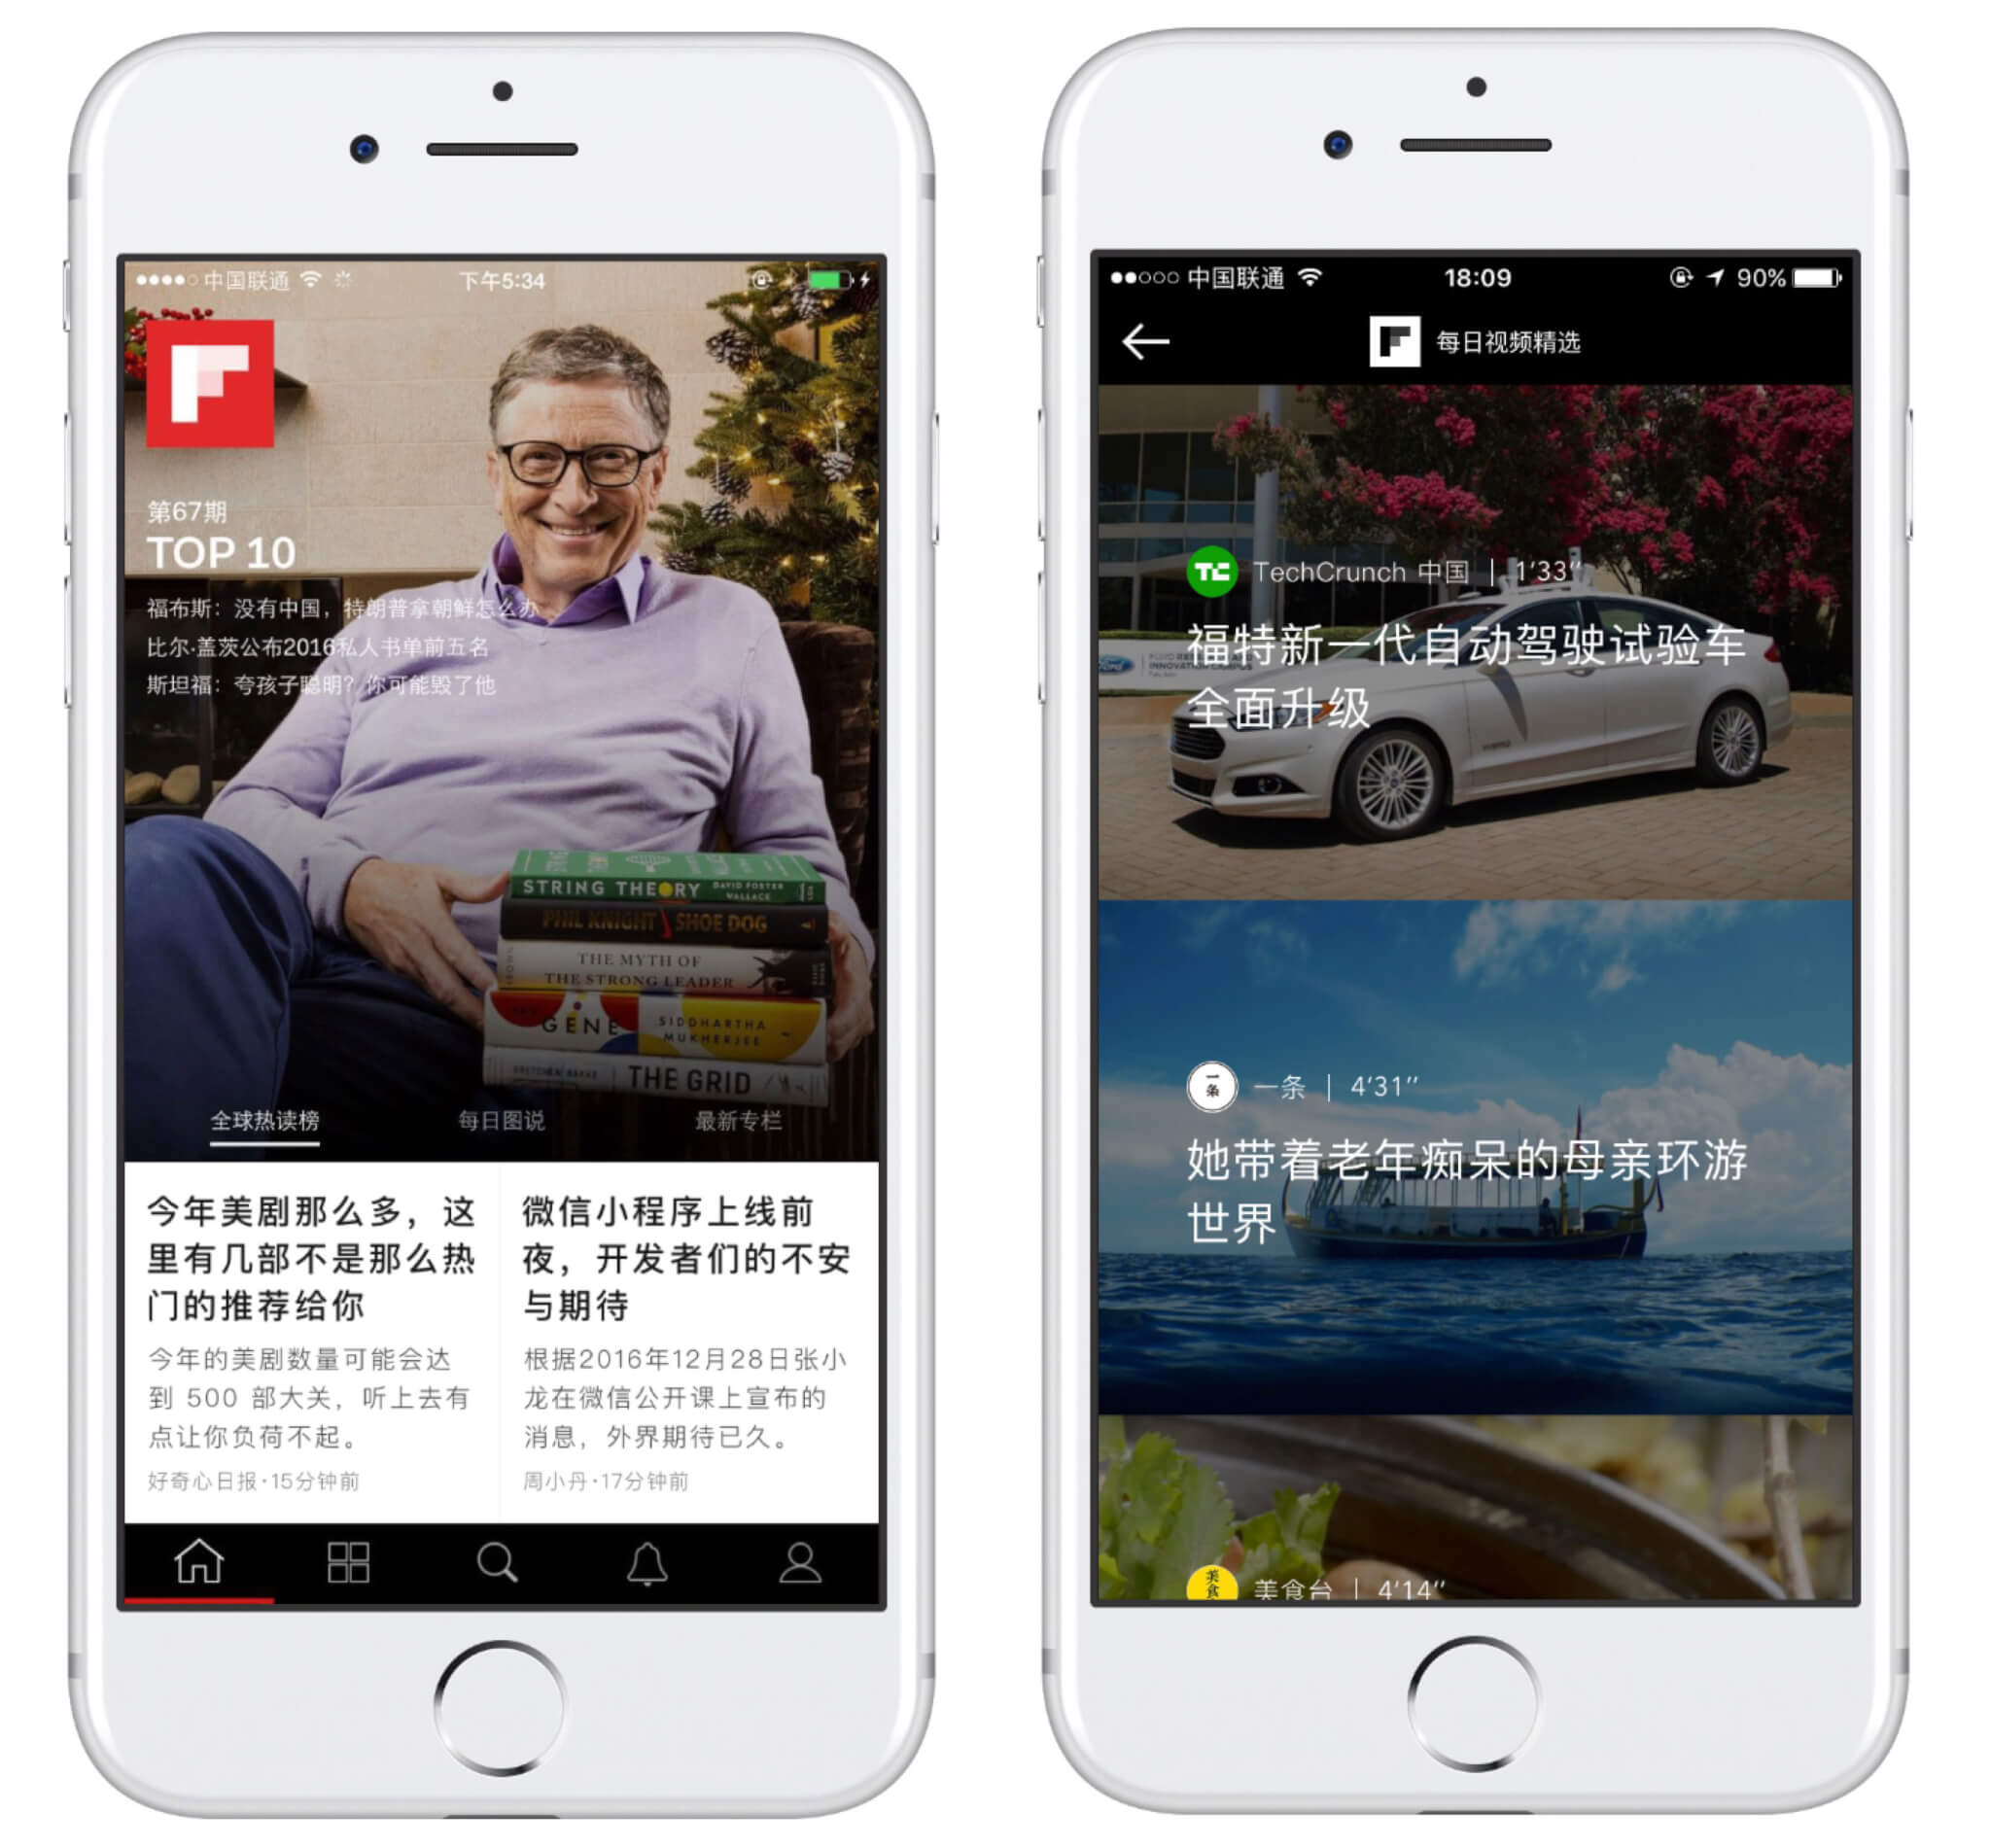 Examples of Flipboard's app in China.